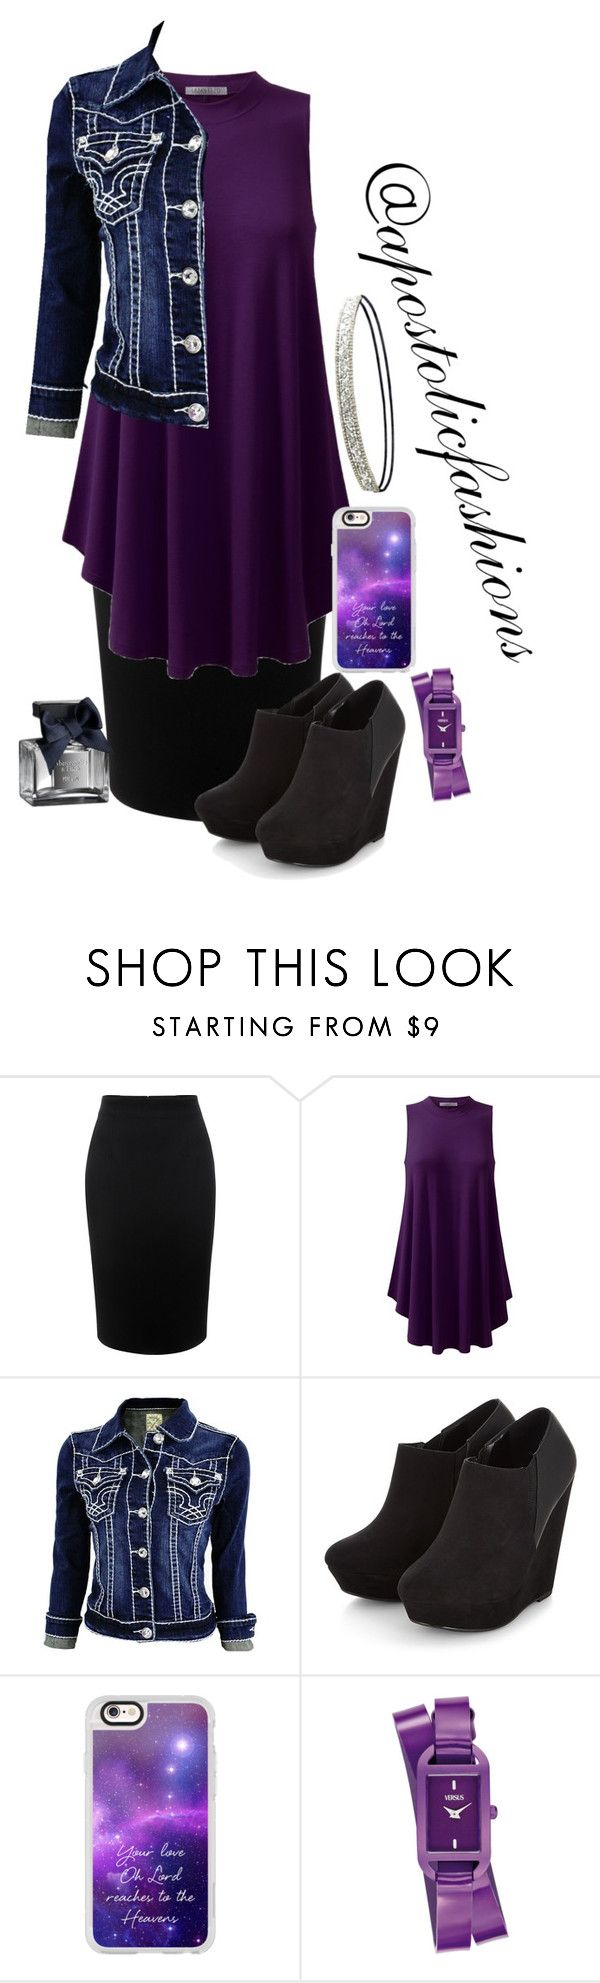 """""""Apostolic Fashions #1437"""" by apostolicfashions on Polyvore featuring Alexander McQueen, Casetify, Versus, Abercrombie & Fitch and Charlotte Russe"""